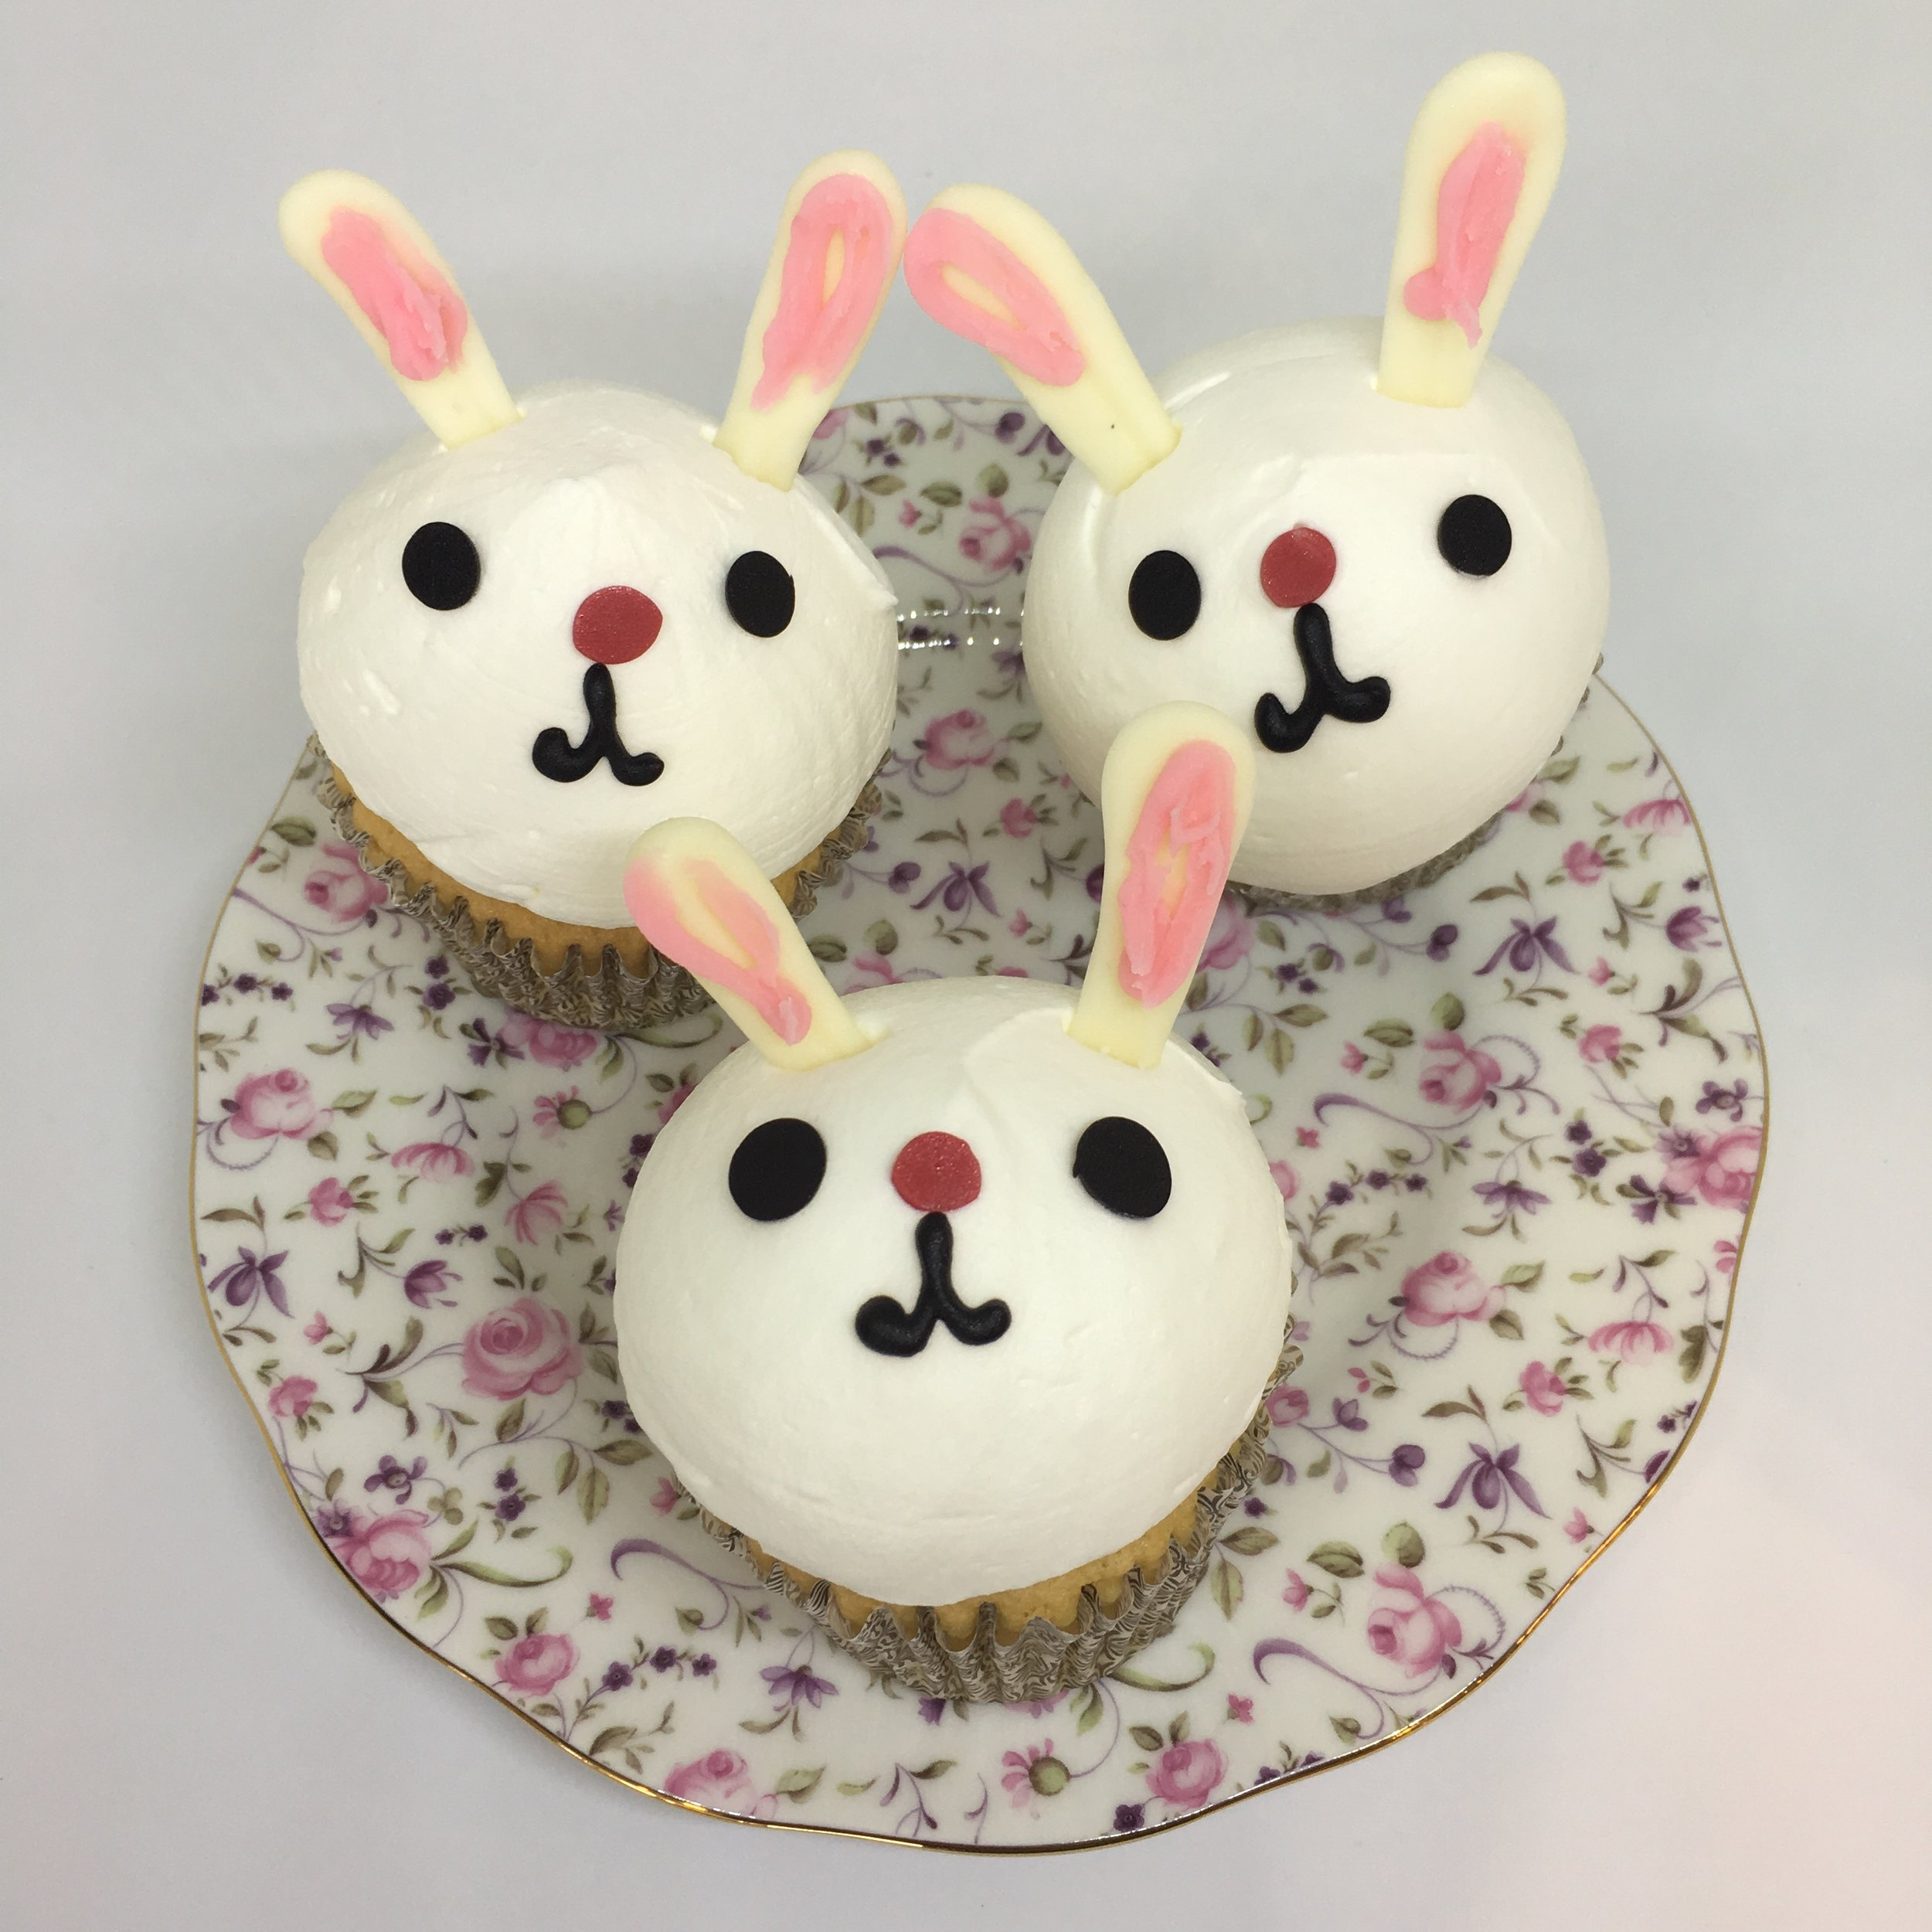 BUNNY CUPCAKE with heavy cream topping (available at Kam Shopping Center location only)